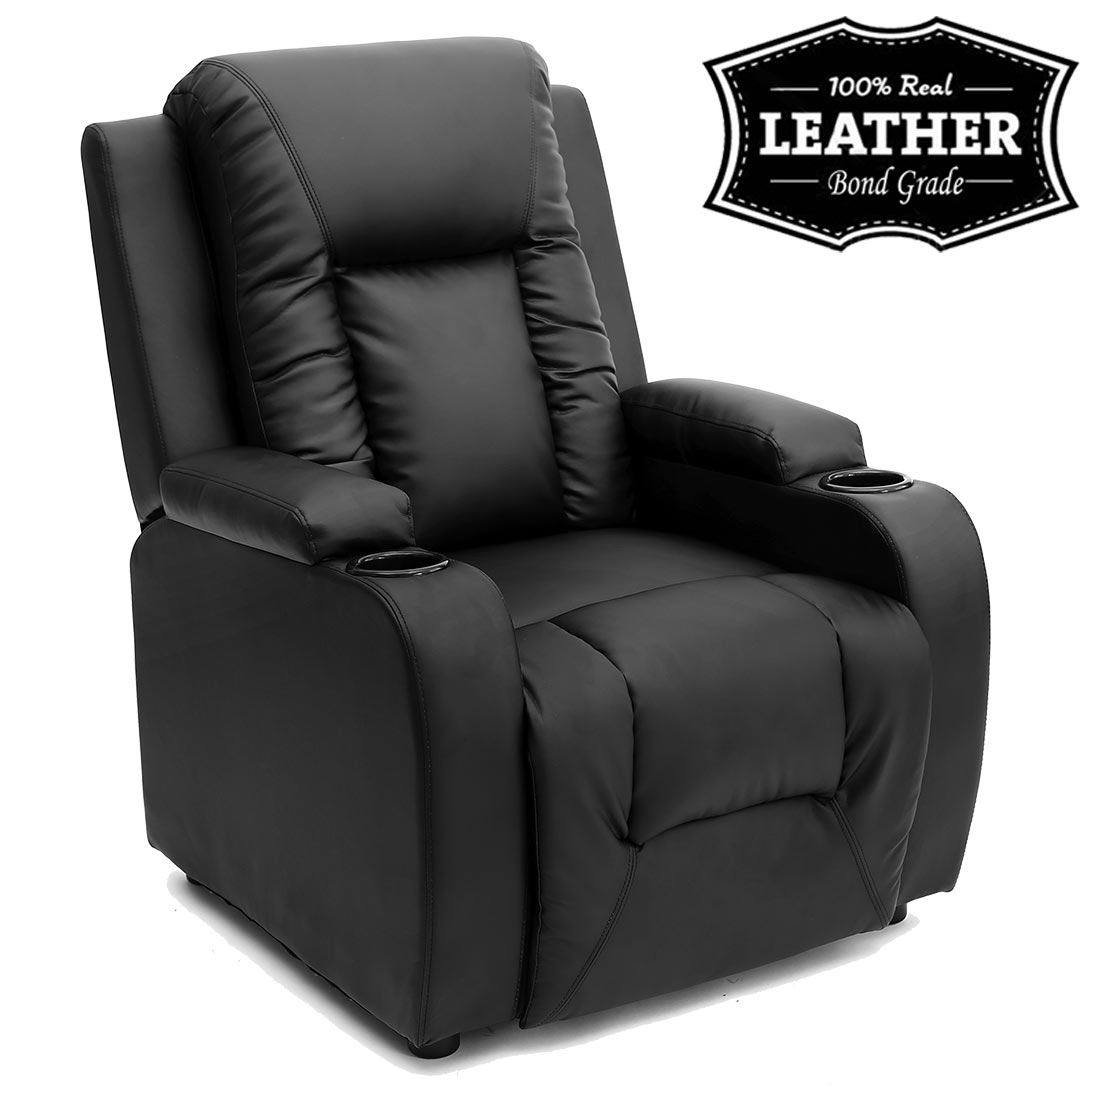 oscar leather recliner w drink holders armchair sofa chair